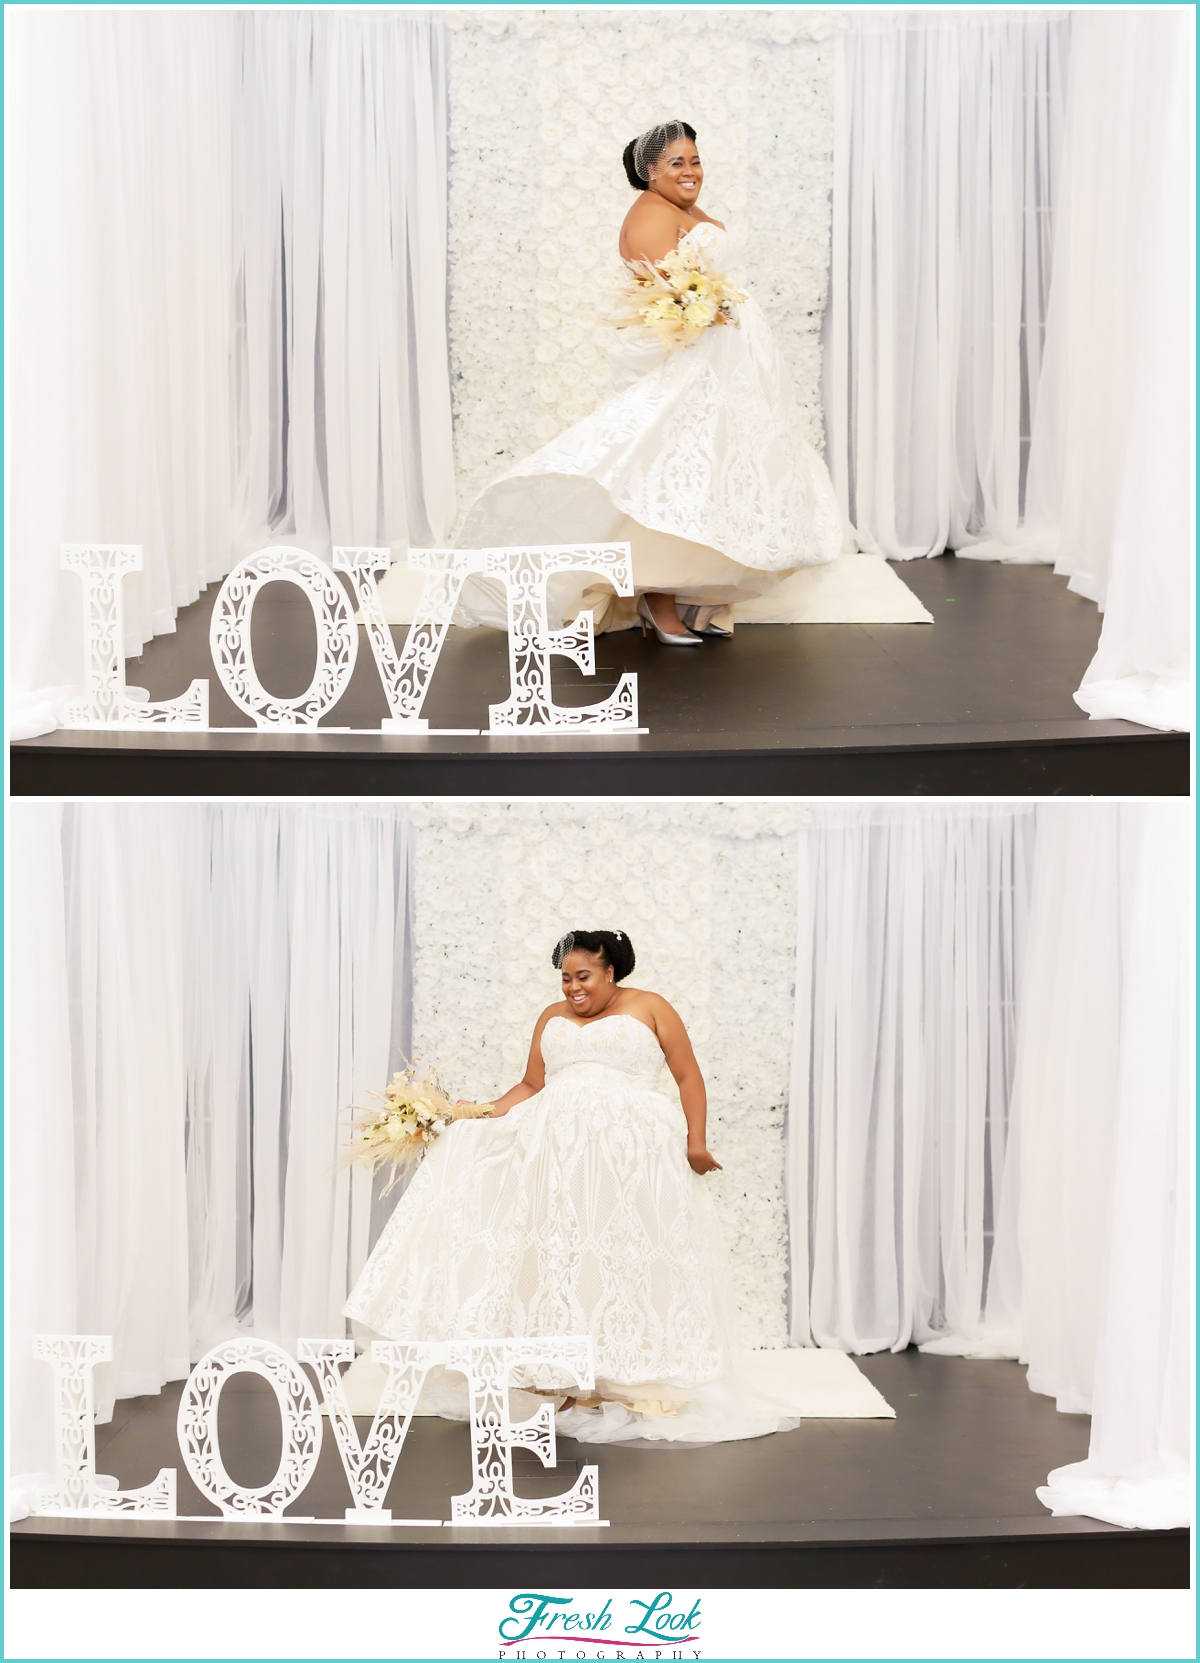 Twirling in the wedding gown